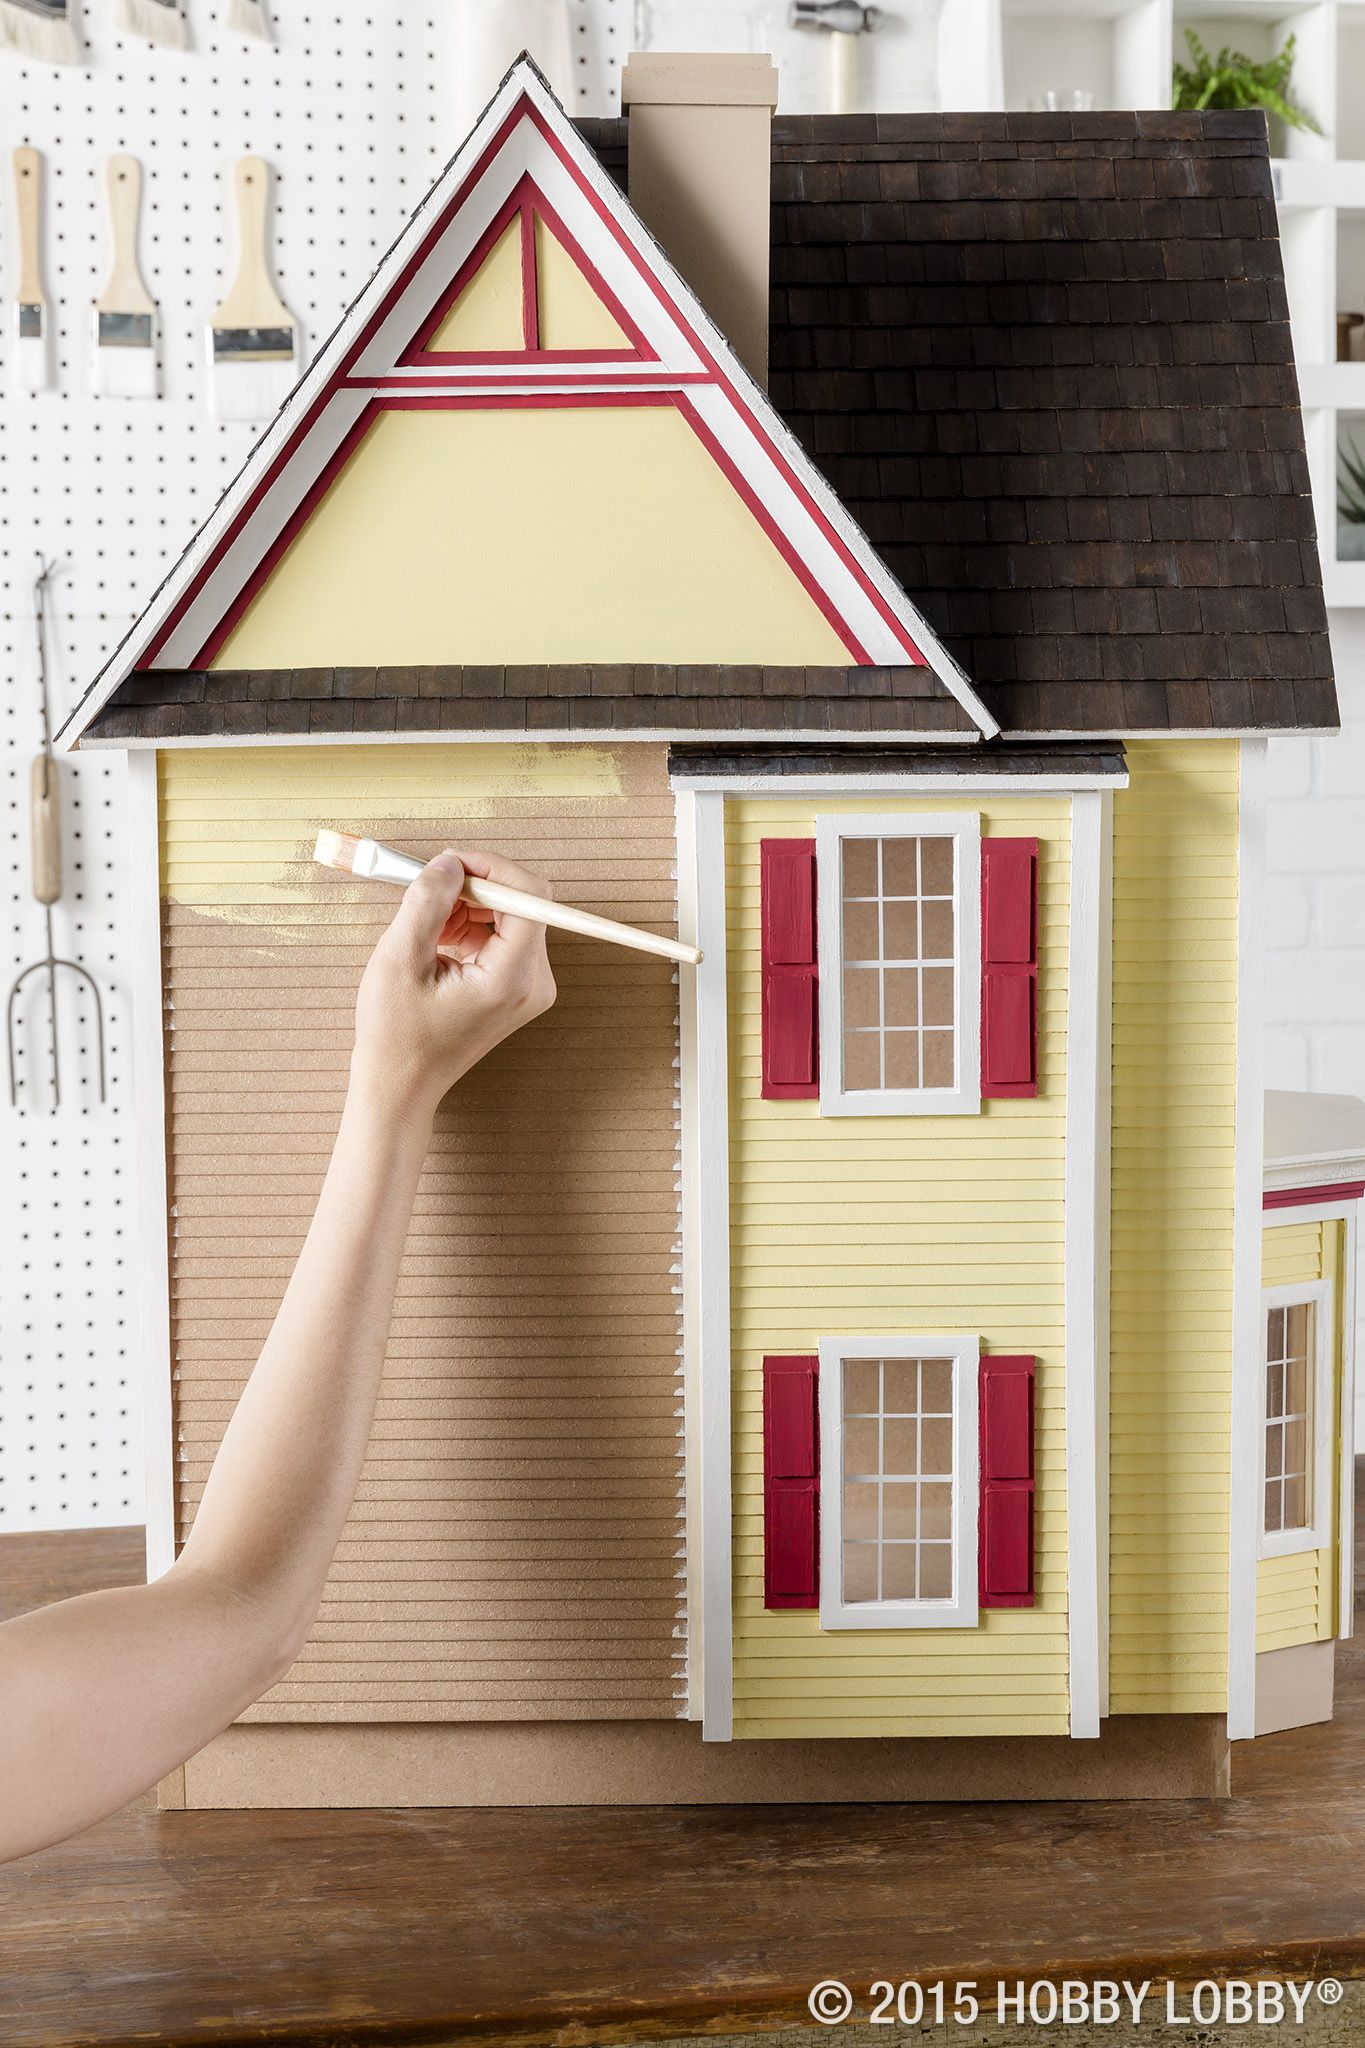 Tips For Painting A Dollhouse 1 Start Painting At The